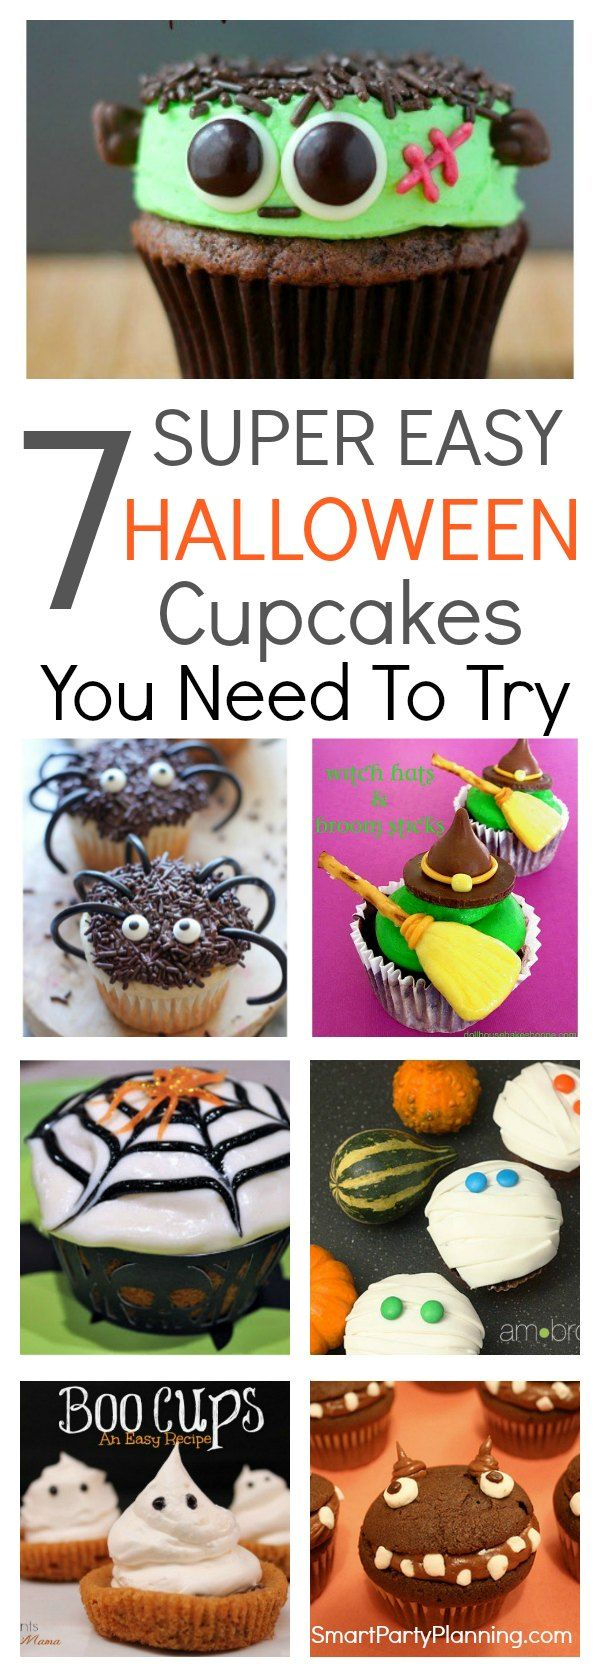 7 super easy Halloween cupcakes that you have to try.  They are perfect for a Halloween party and are the kind of treats that both the adults and kids love. If you are looking for creepy food ideas this Halloween then make sure that cupcakes are on the list! via @https://au.pinterest.com/smartpartyplan/